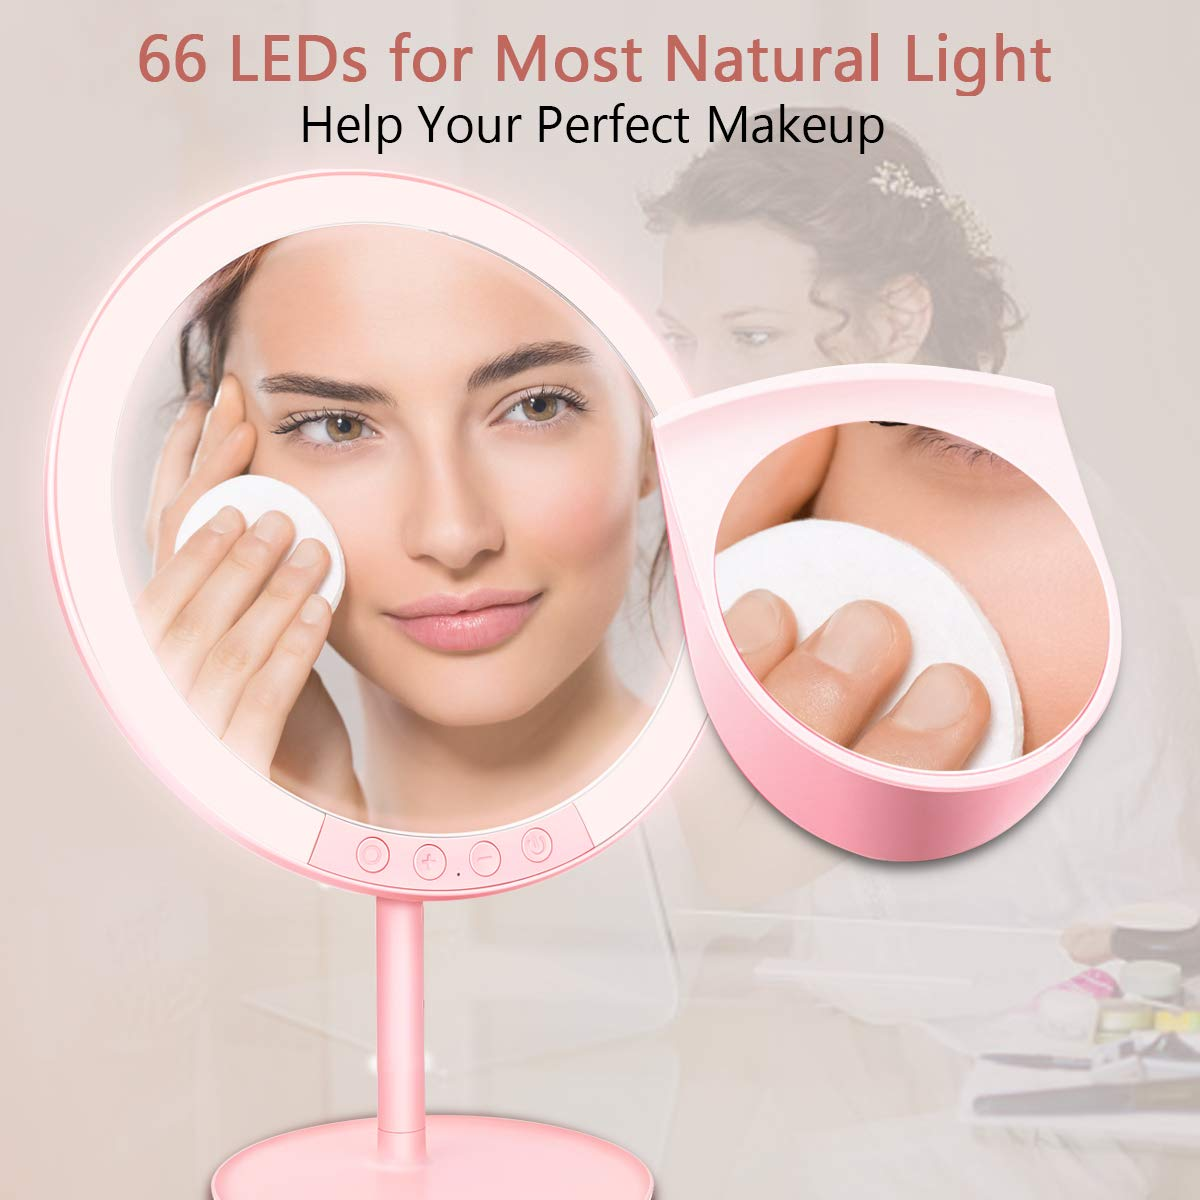 Lighted Makeup Mirror, Morpilot Vanity Dressing Table Mirror with 66 LEDs,3 Colors Light Adjustment 7 Brightness,Tabletops Cosmetic Mirror,7X Magnifying Travel Make Up Mirror,USB Charging,120°Rotation